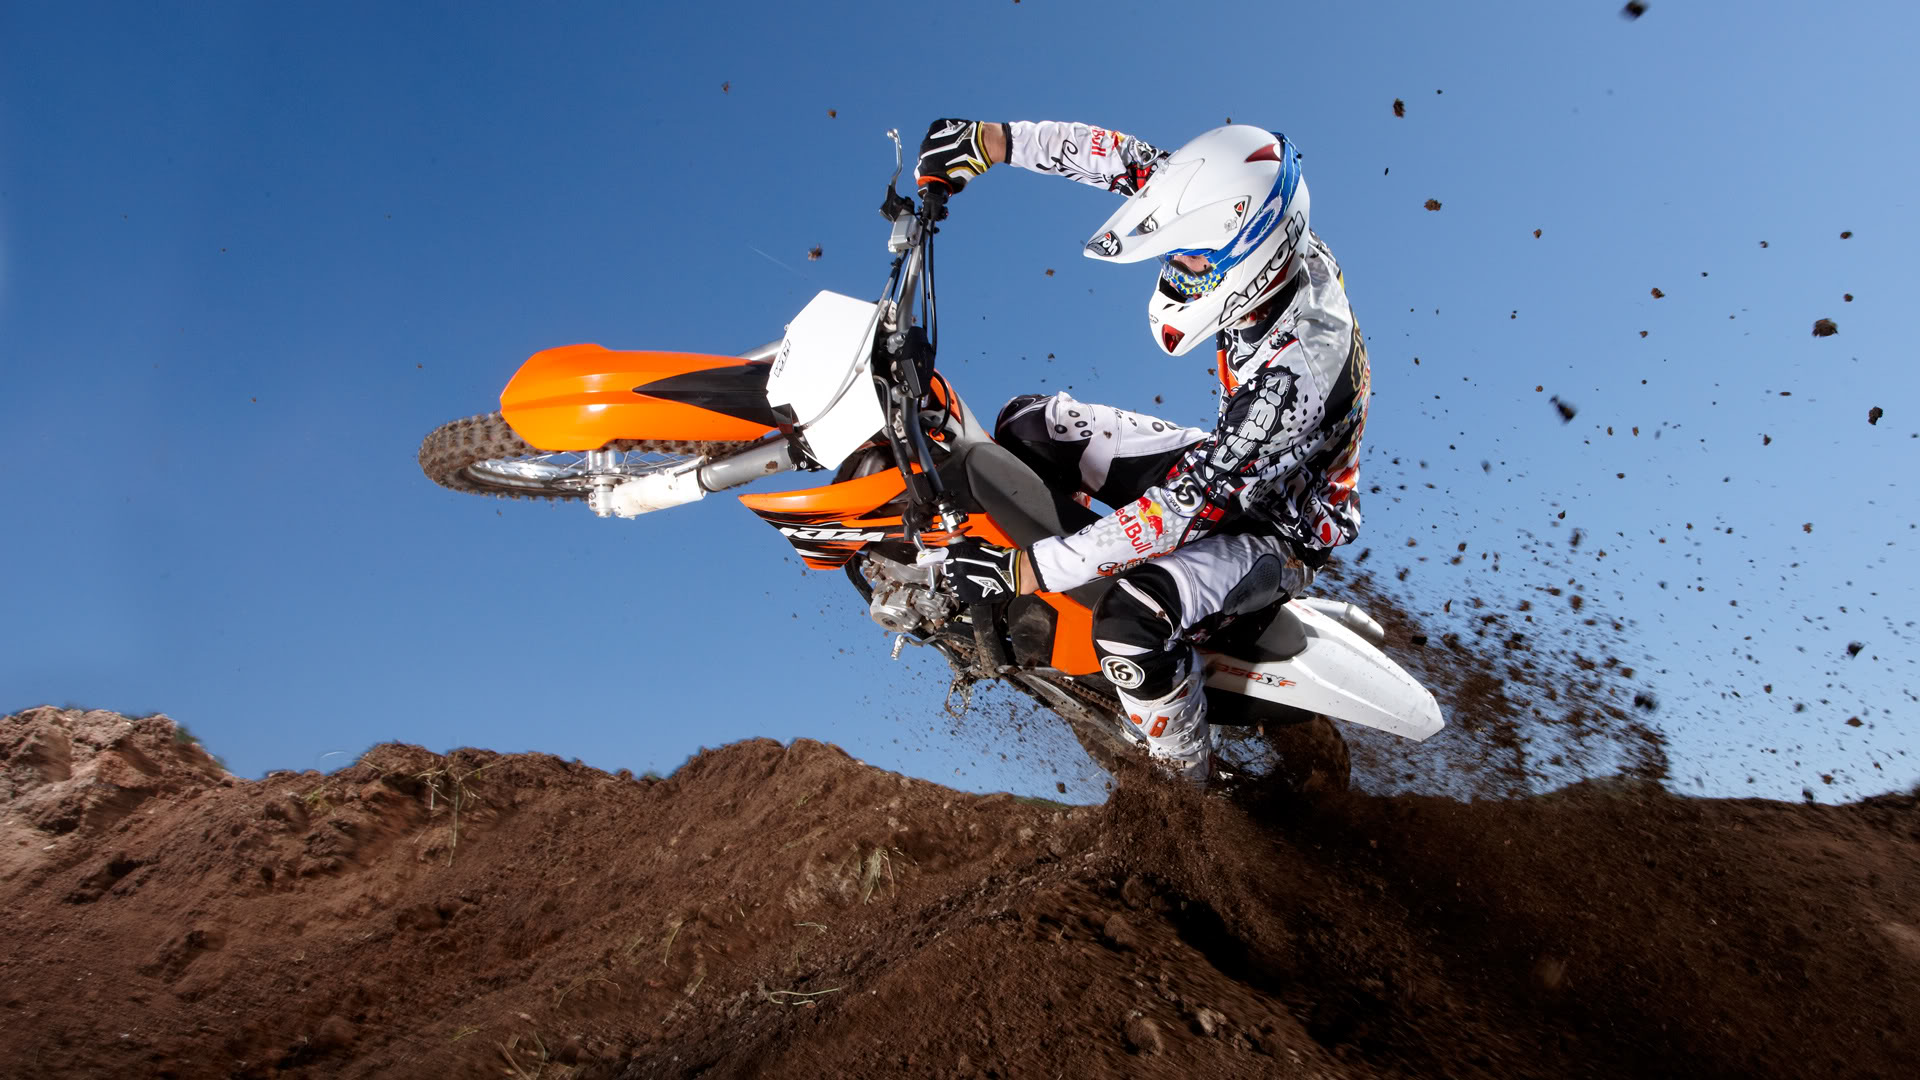 Ktm Motocross Wallpaper Hd 10 Awesome Hd Motocross Wallpapers